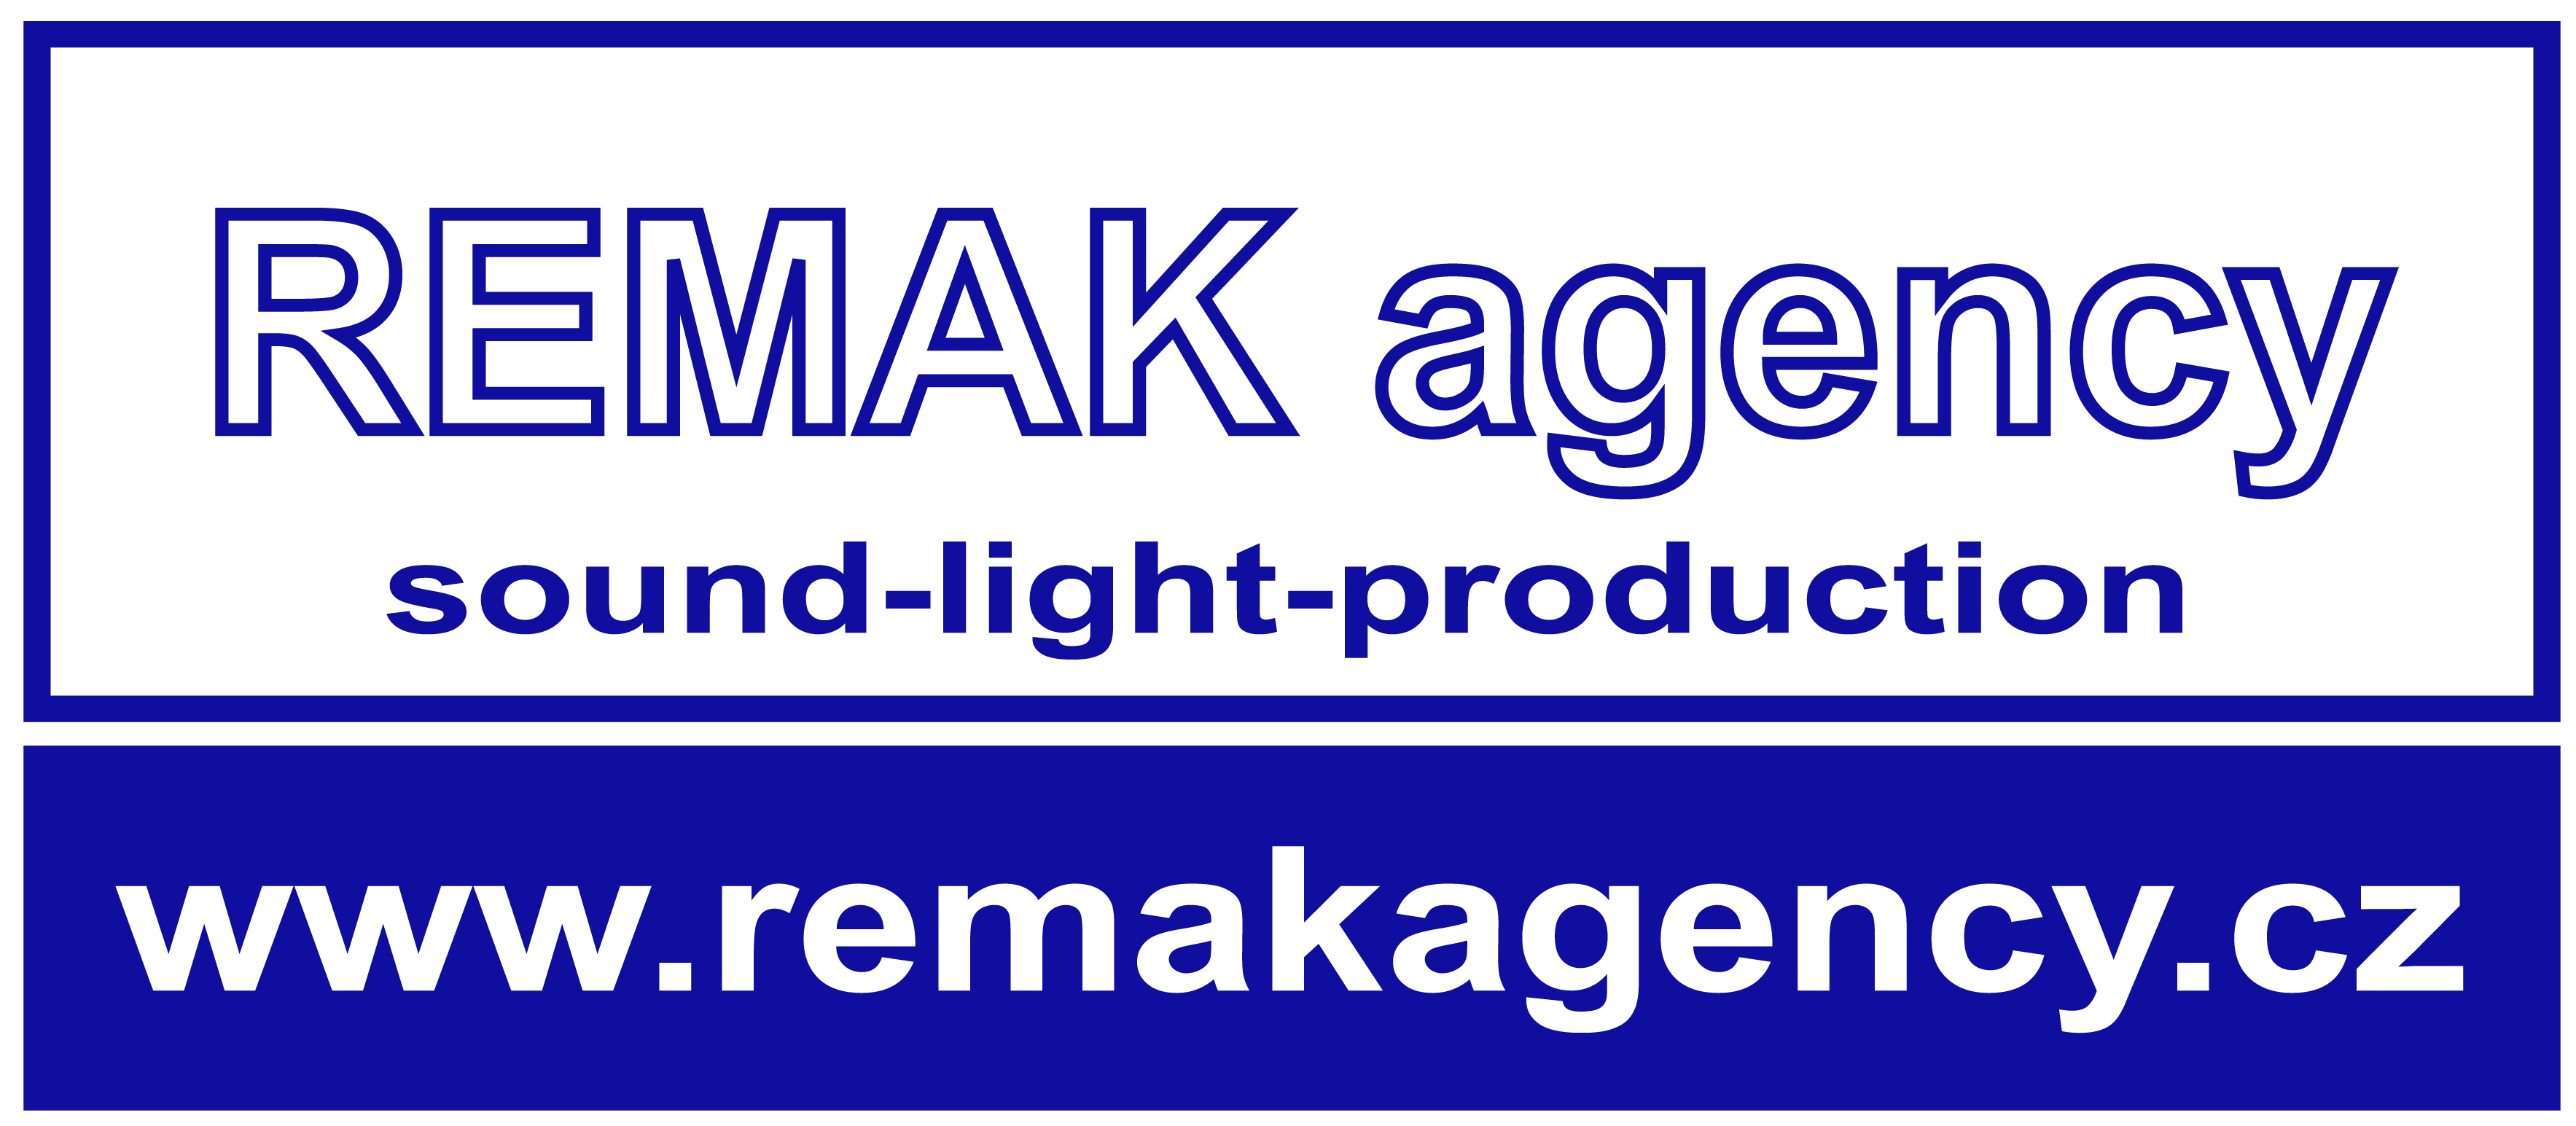 REMAK audio